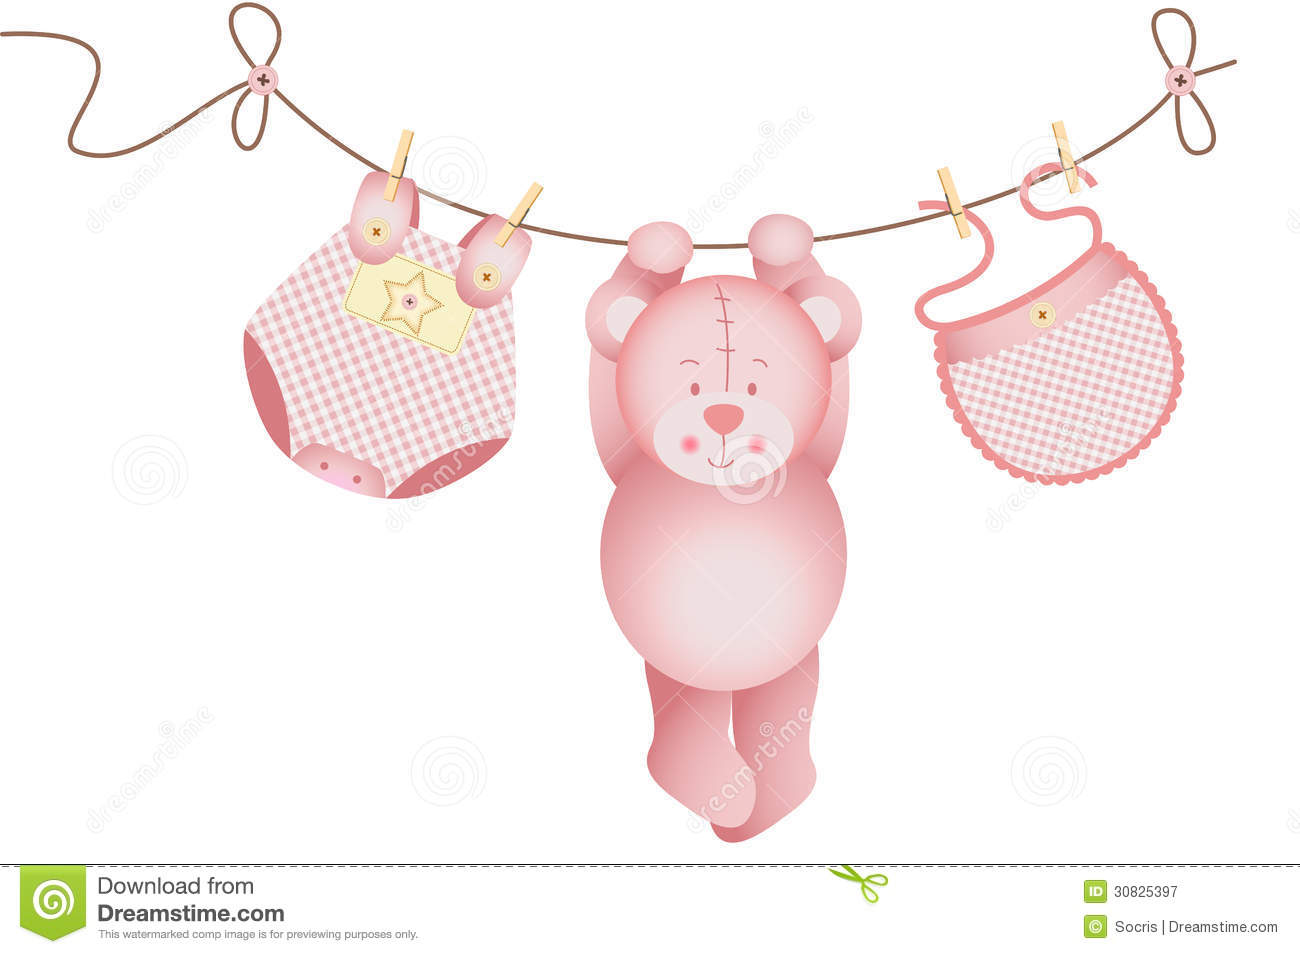 Teddy bear baby girl hanging on a clothesline stock vector for Baby clothesline decoration baby shower